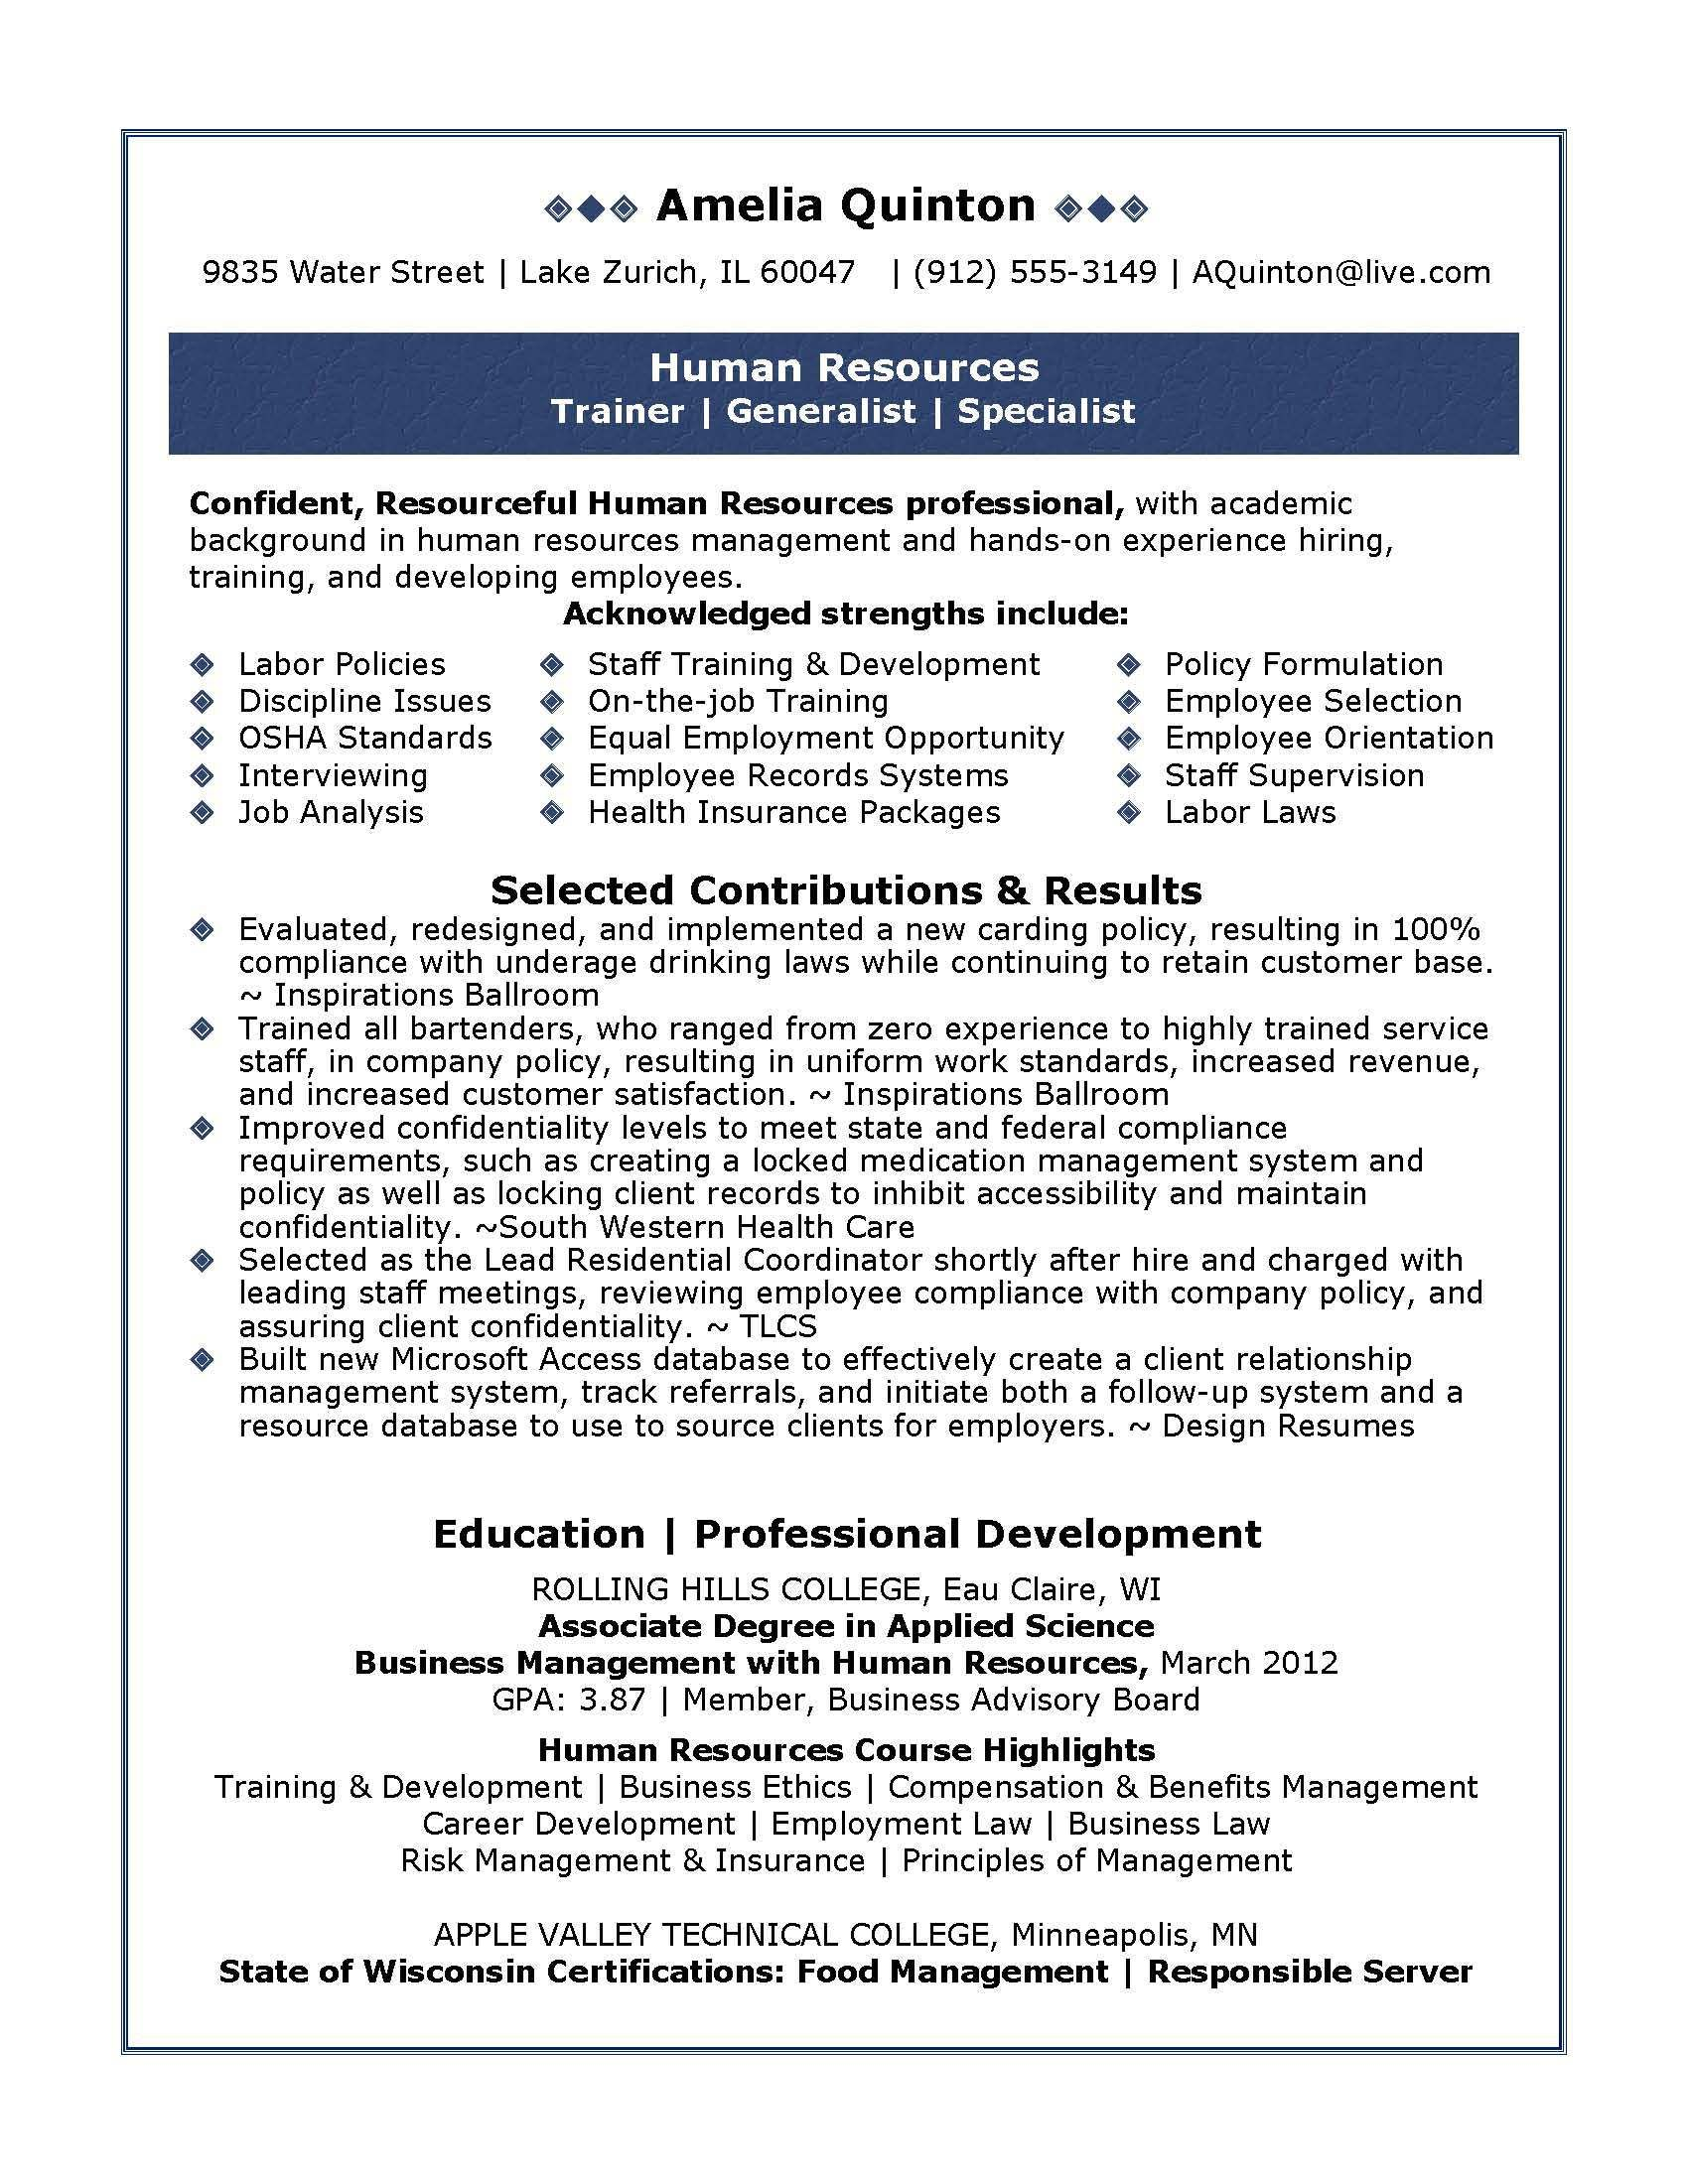 resume samples were written by julie walraven cover letter for human resources format Resume Resume Format For Formulation And Development